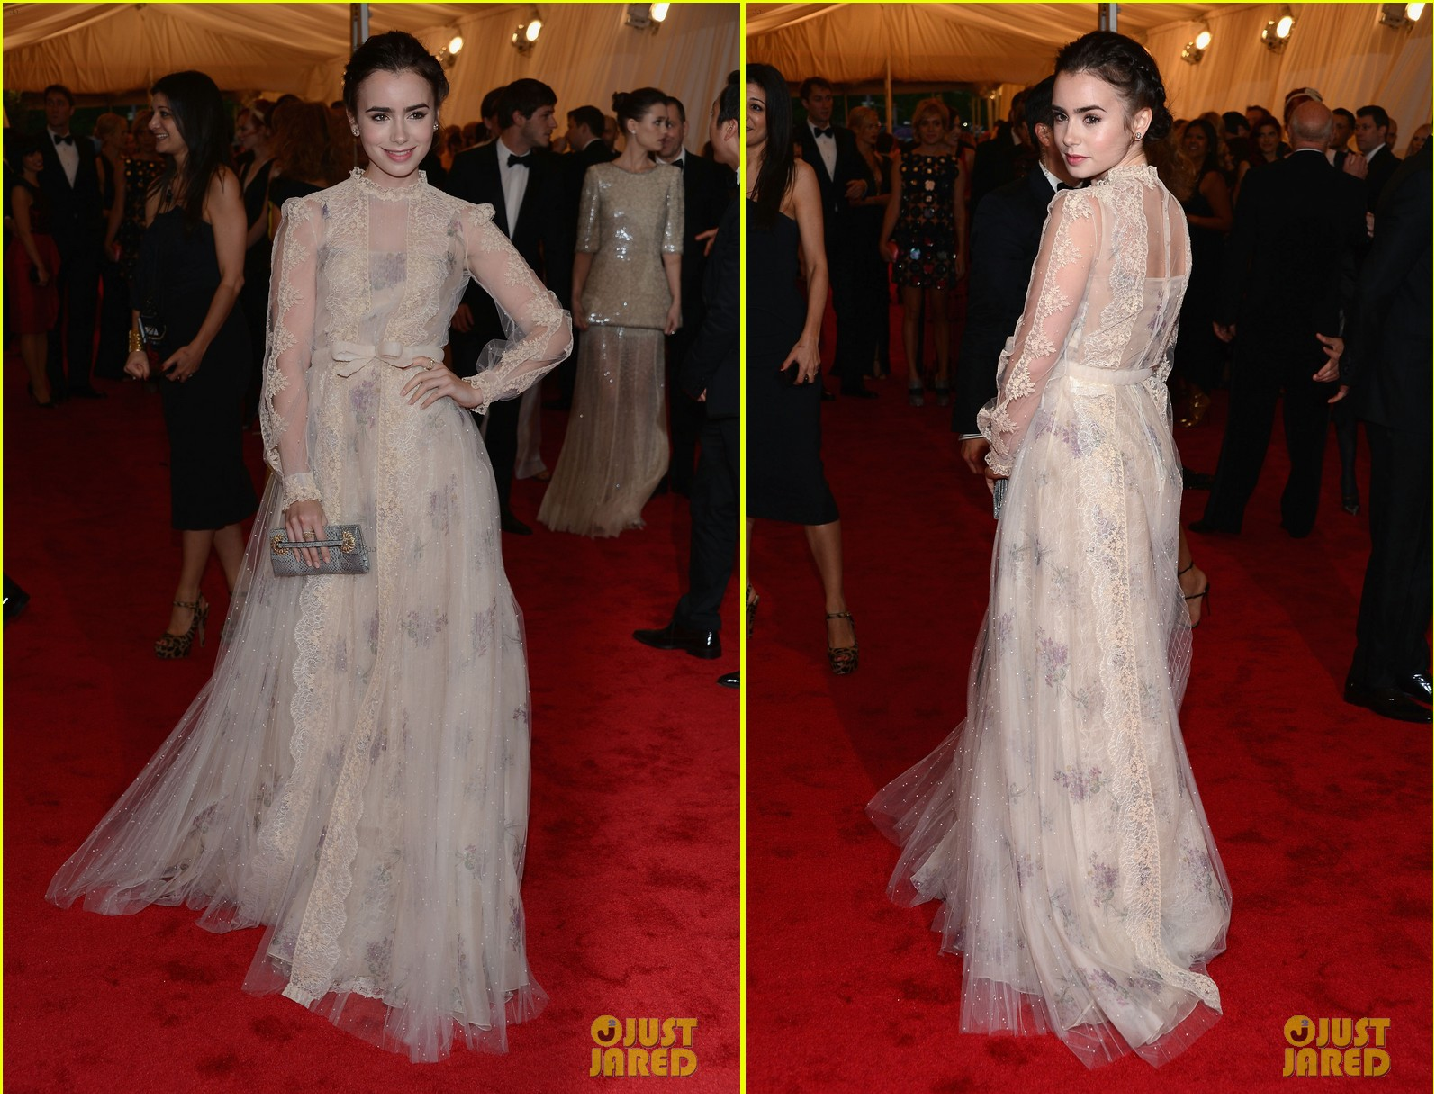 The yearold actress lily collins wore a valentino dress paired